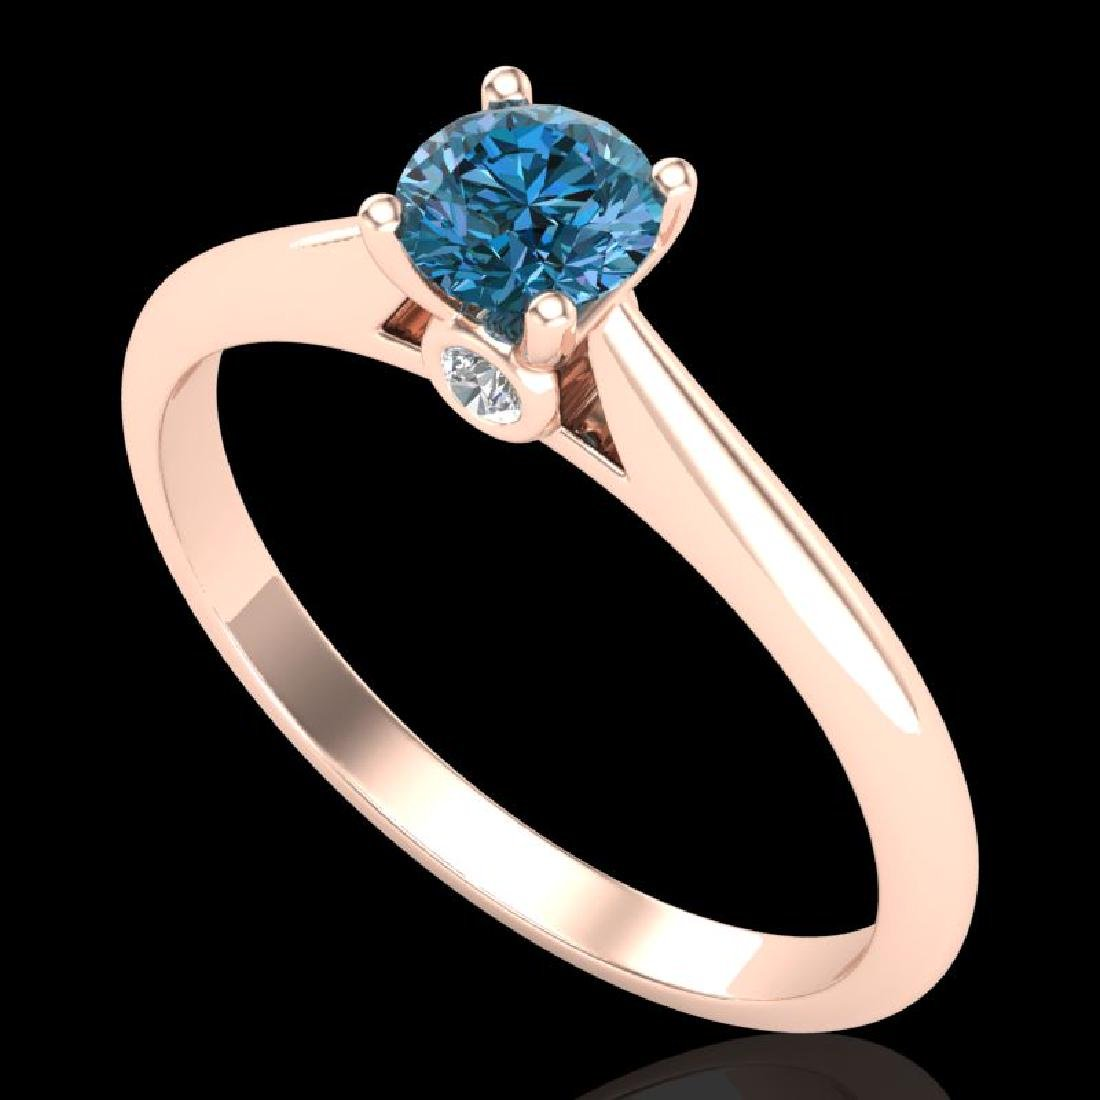 0.4 CTW Intense Blue Diamond Solitaire Engagement Art